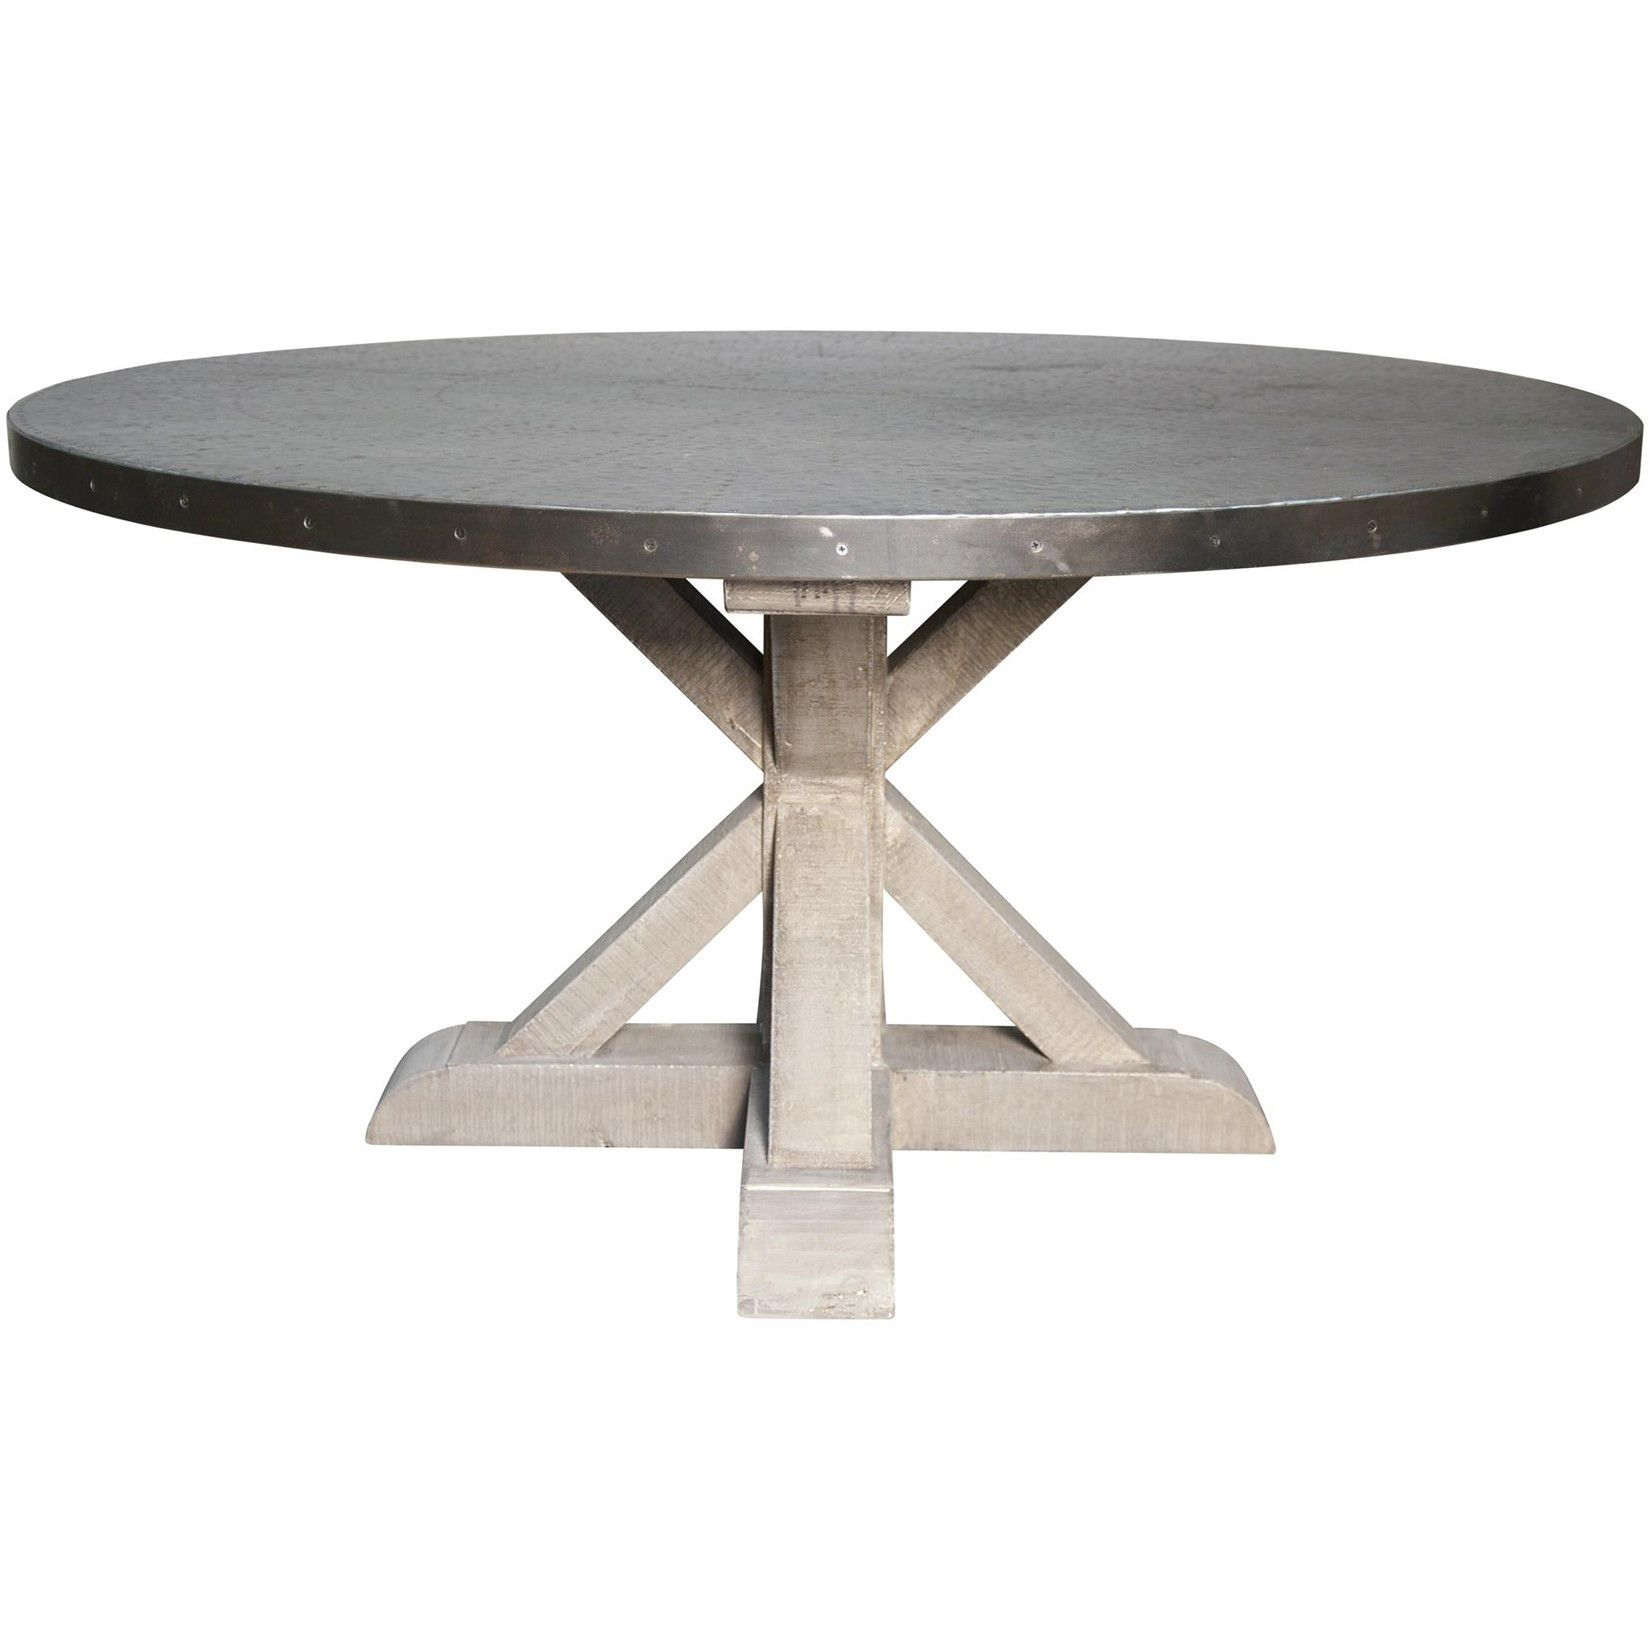 Noir Zinc Top Rd Table W Wooden X Base Vintage Dining Table Round Dining Table Zinc Table